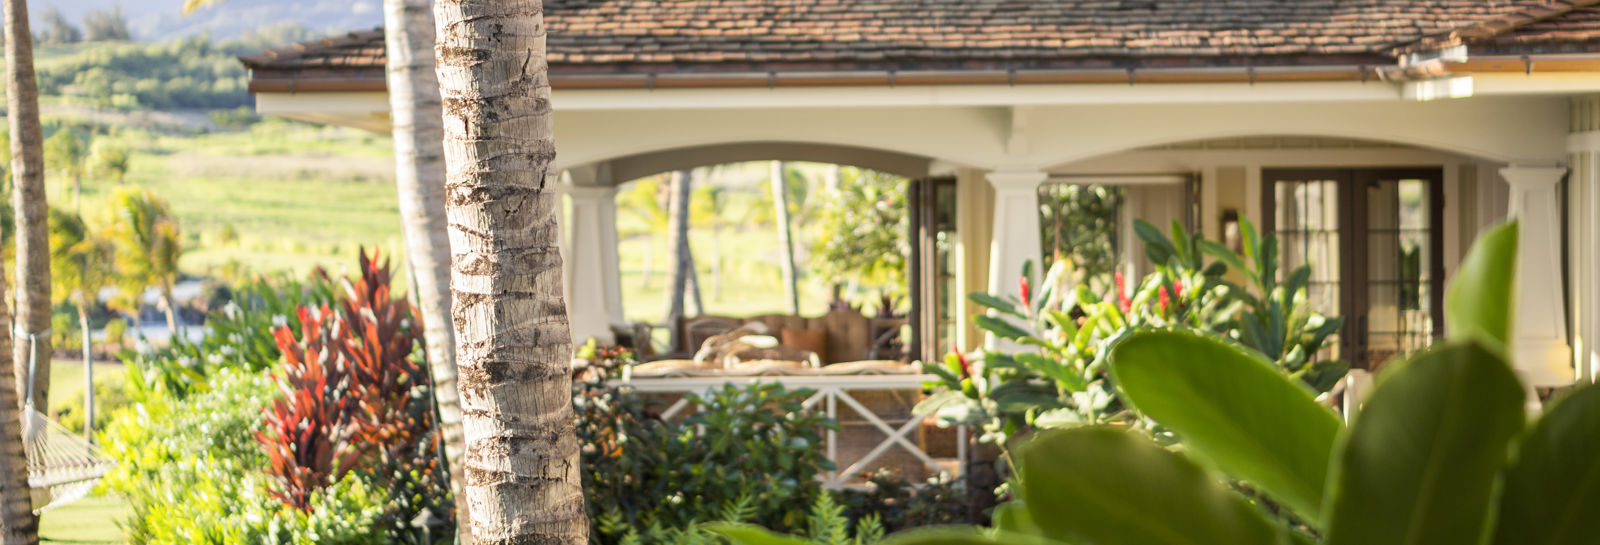 Looking through the lush foliage across the lawn to the open air seating of the Kukui'ula Club House restaurant.